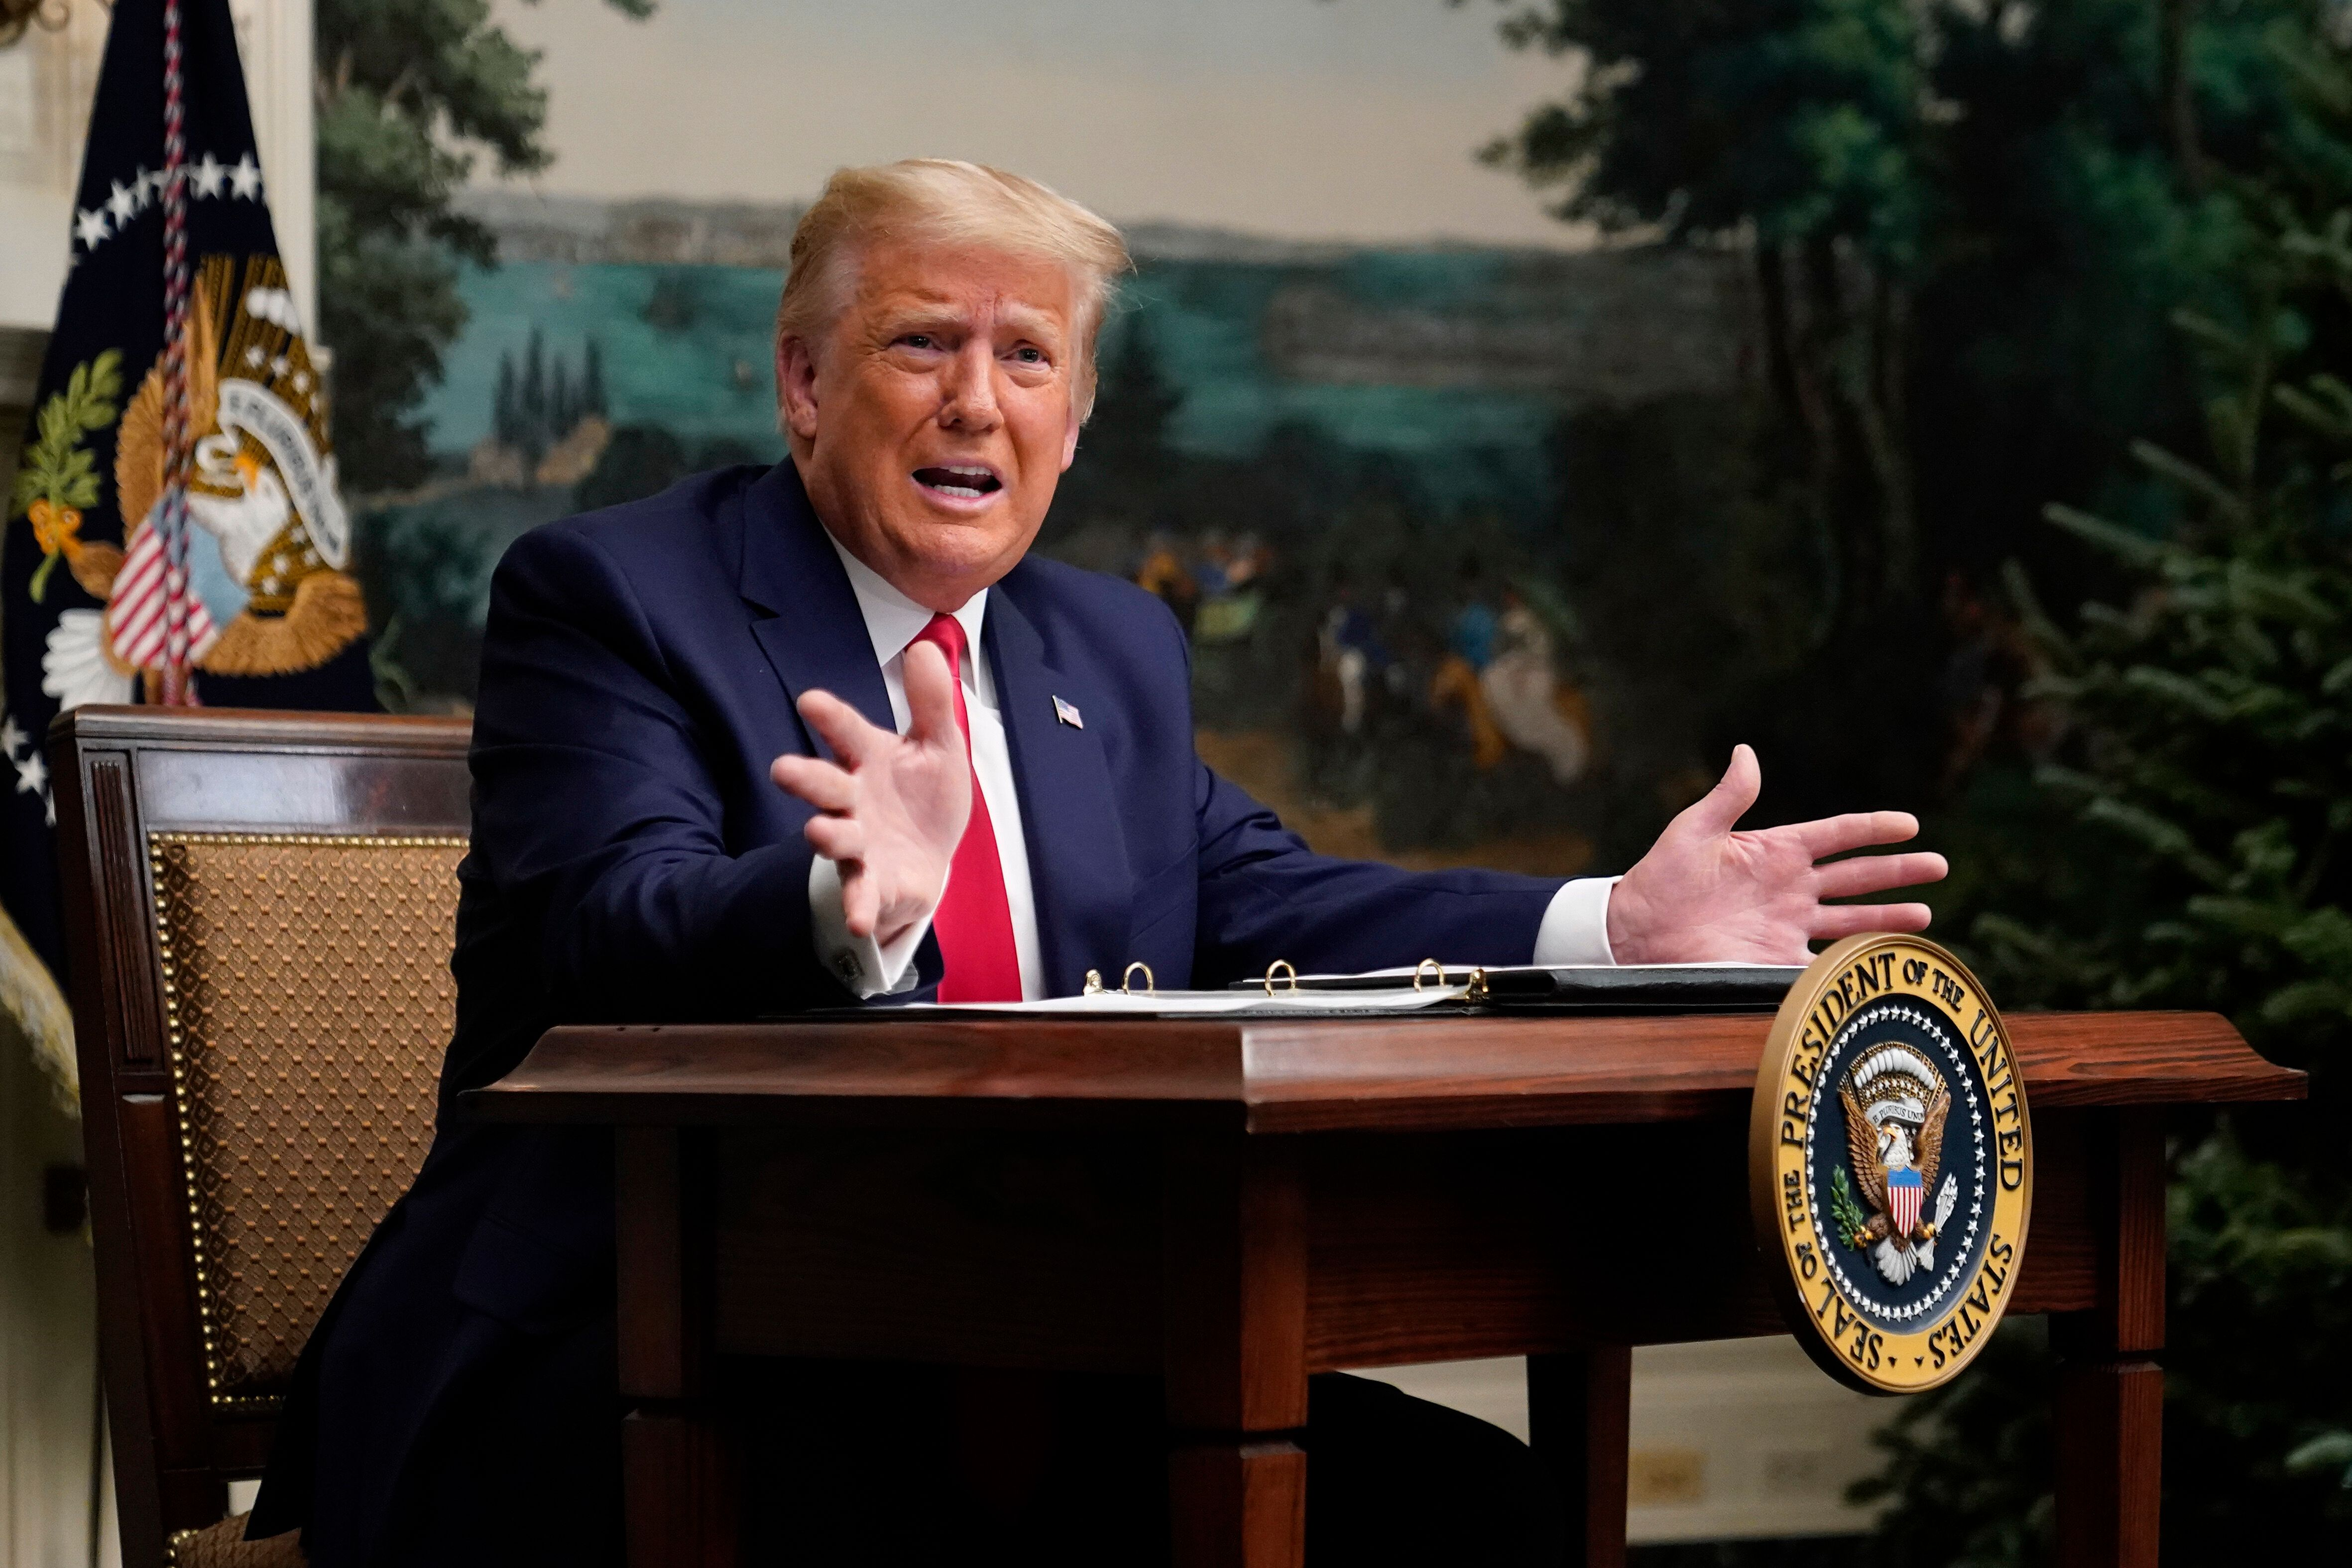 Trump Says He's Not Thankful, Refuses To Say If He Will Attend Biden Inauguration